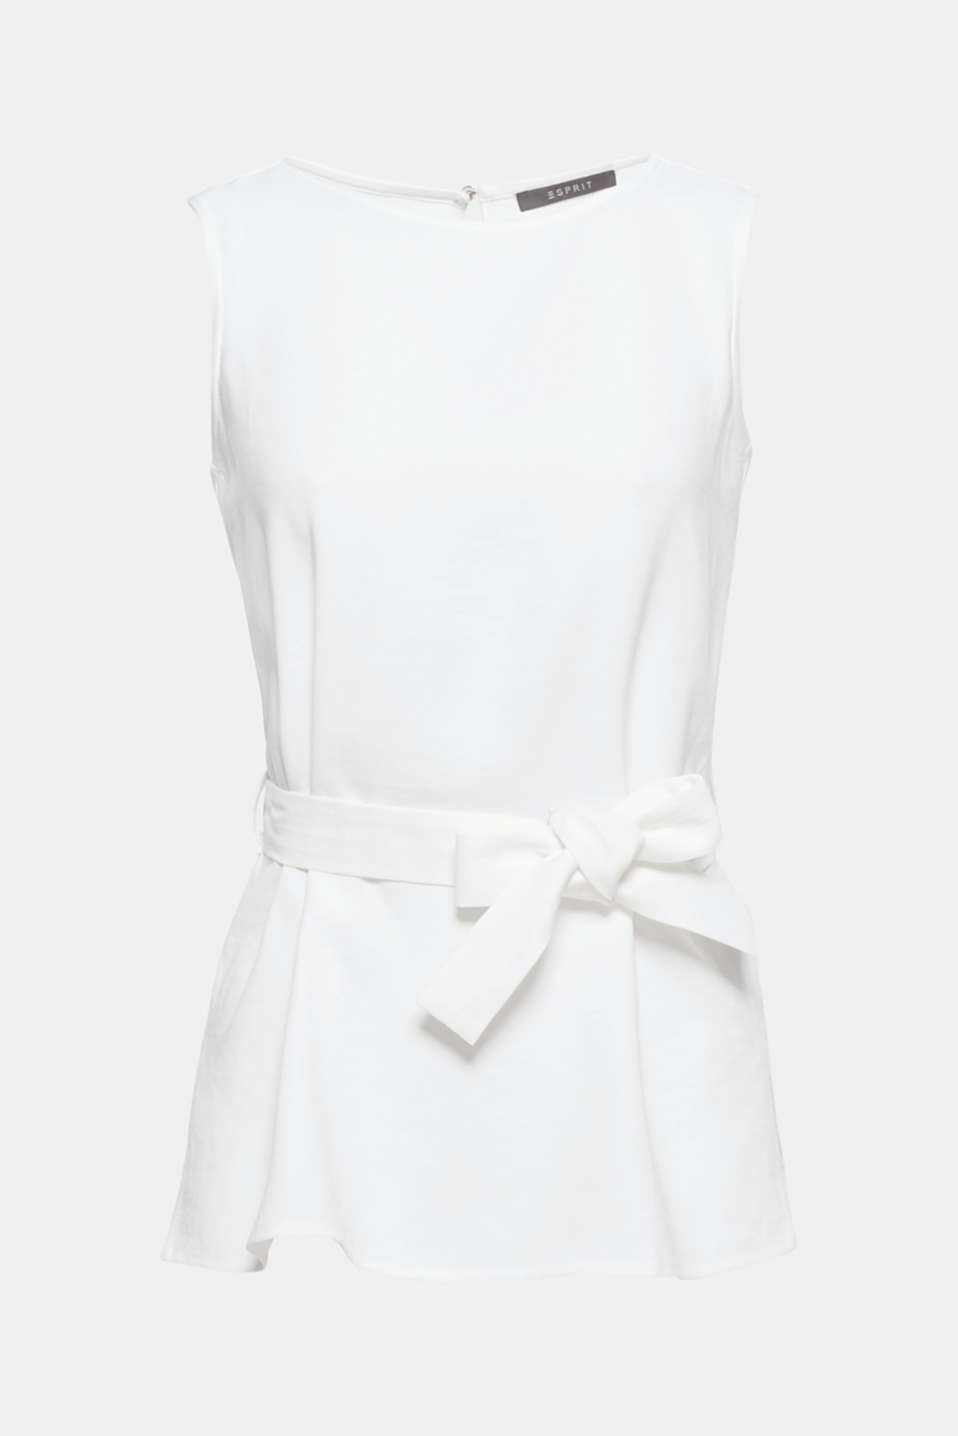 Casually tied: a belt nips this lightweight, woven top loosely yet femininely into the waist!